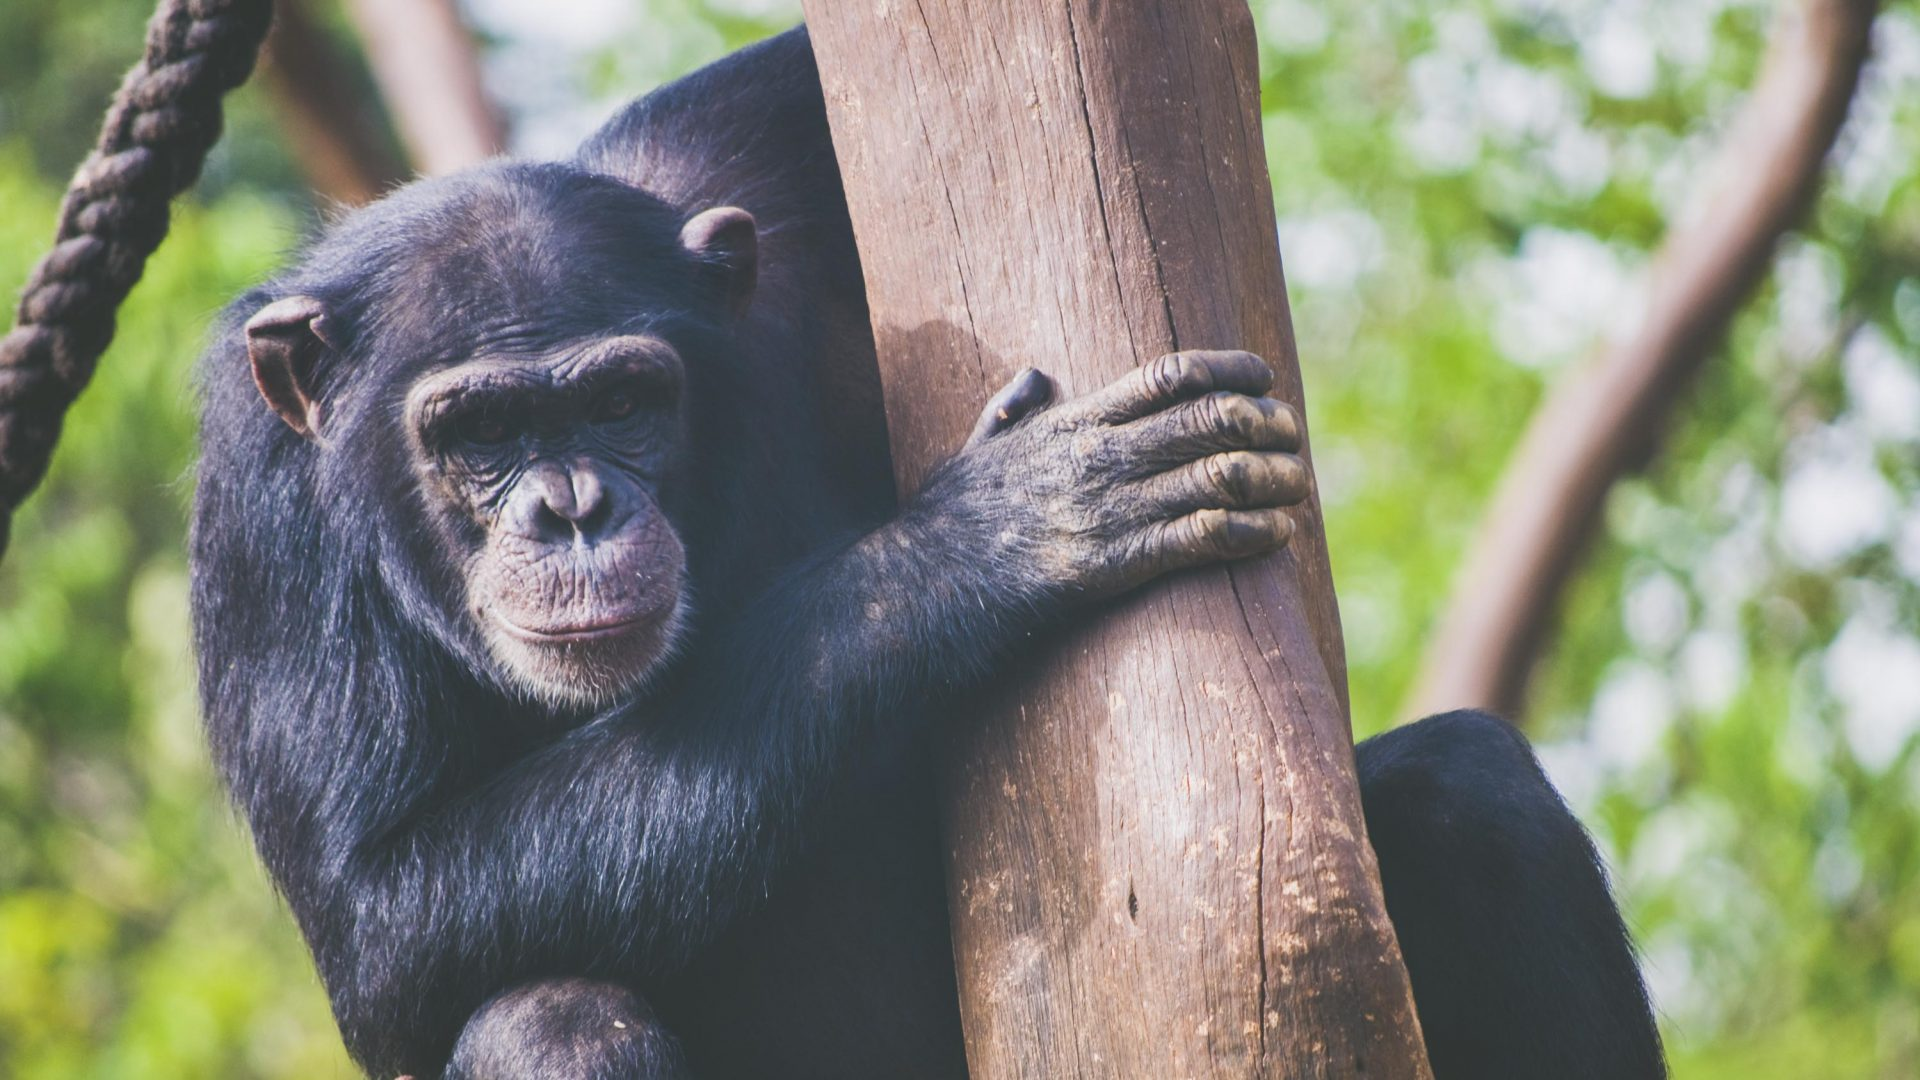 A chimp at the Tacugama Chimpanzee Sanctuary, Sierra Leone.